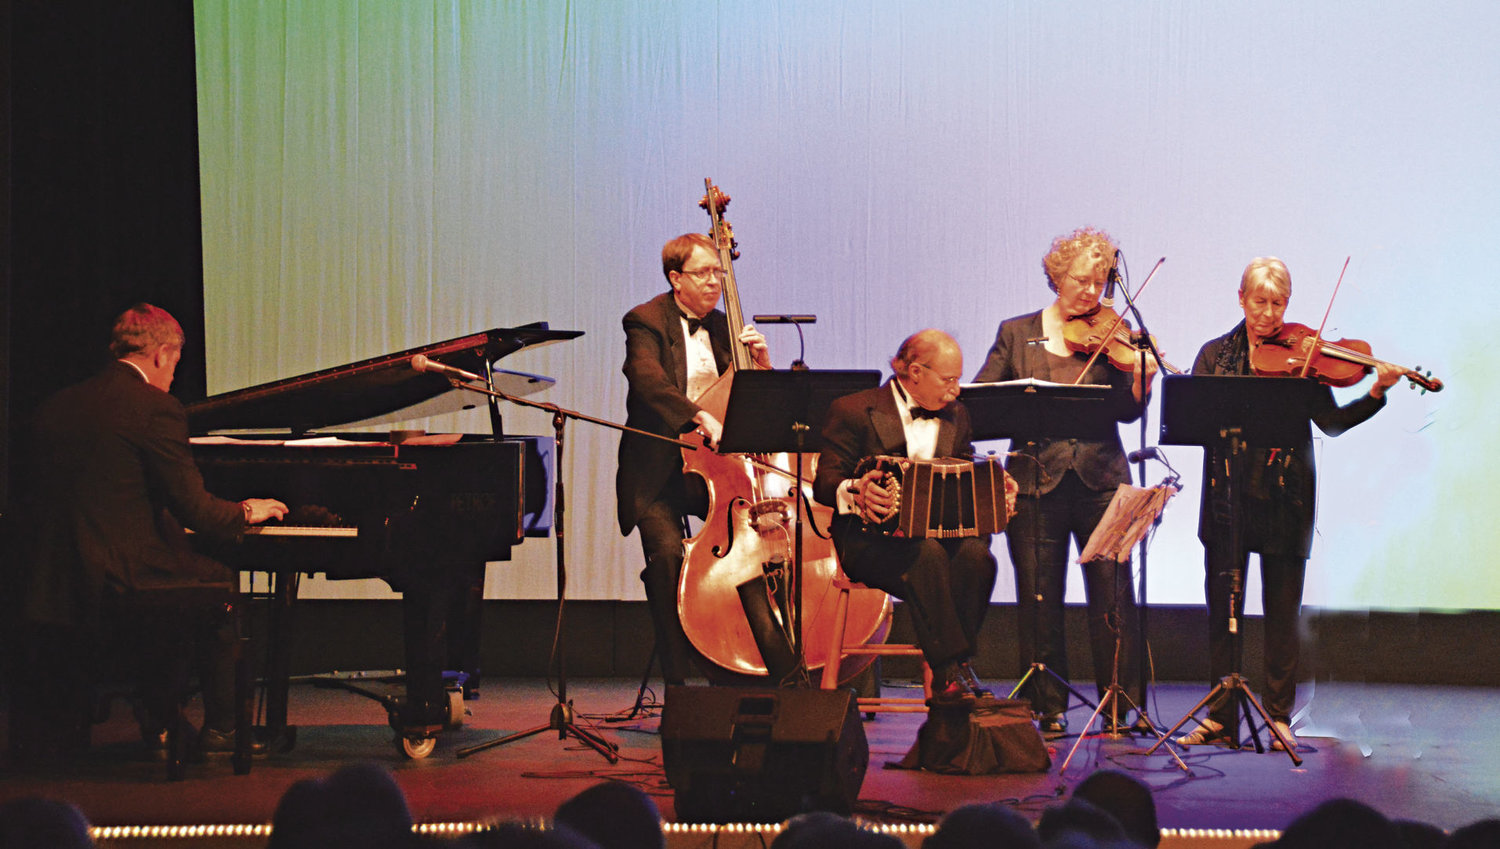 Tangoheart Quintet gives its third performance at The Rose Theatre on Saturday, Jan. 14. Pictured (from left) is Andy Carr (piano), Todd Gowers (bass), Bertram Levy (bandoneon), Ruthie Dornfeld (violin) and Dorothy Shapiro (viola). Courtesy photo